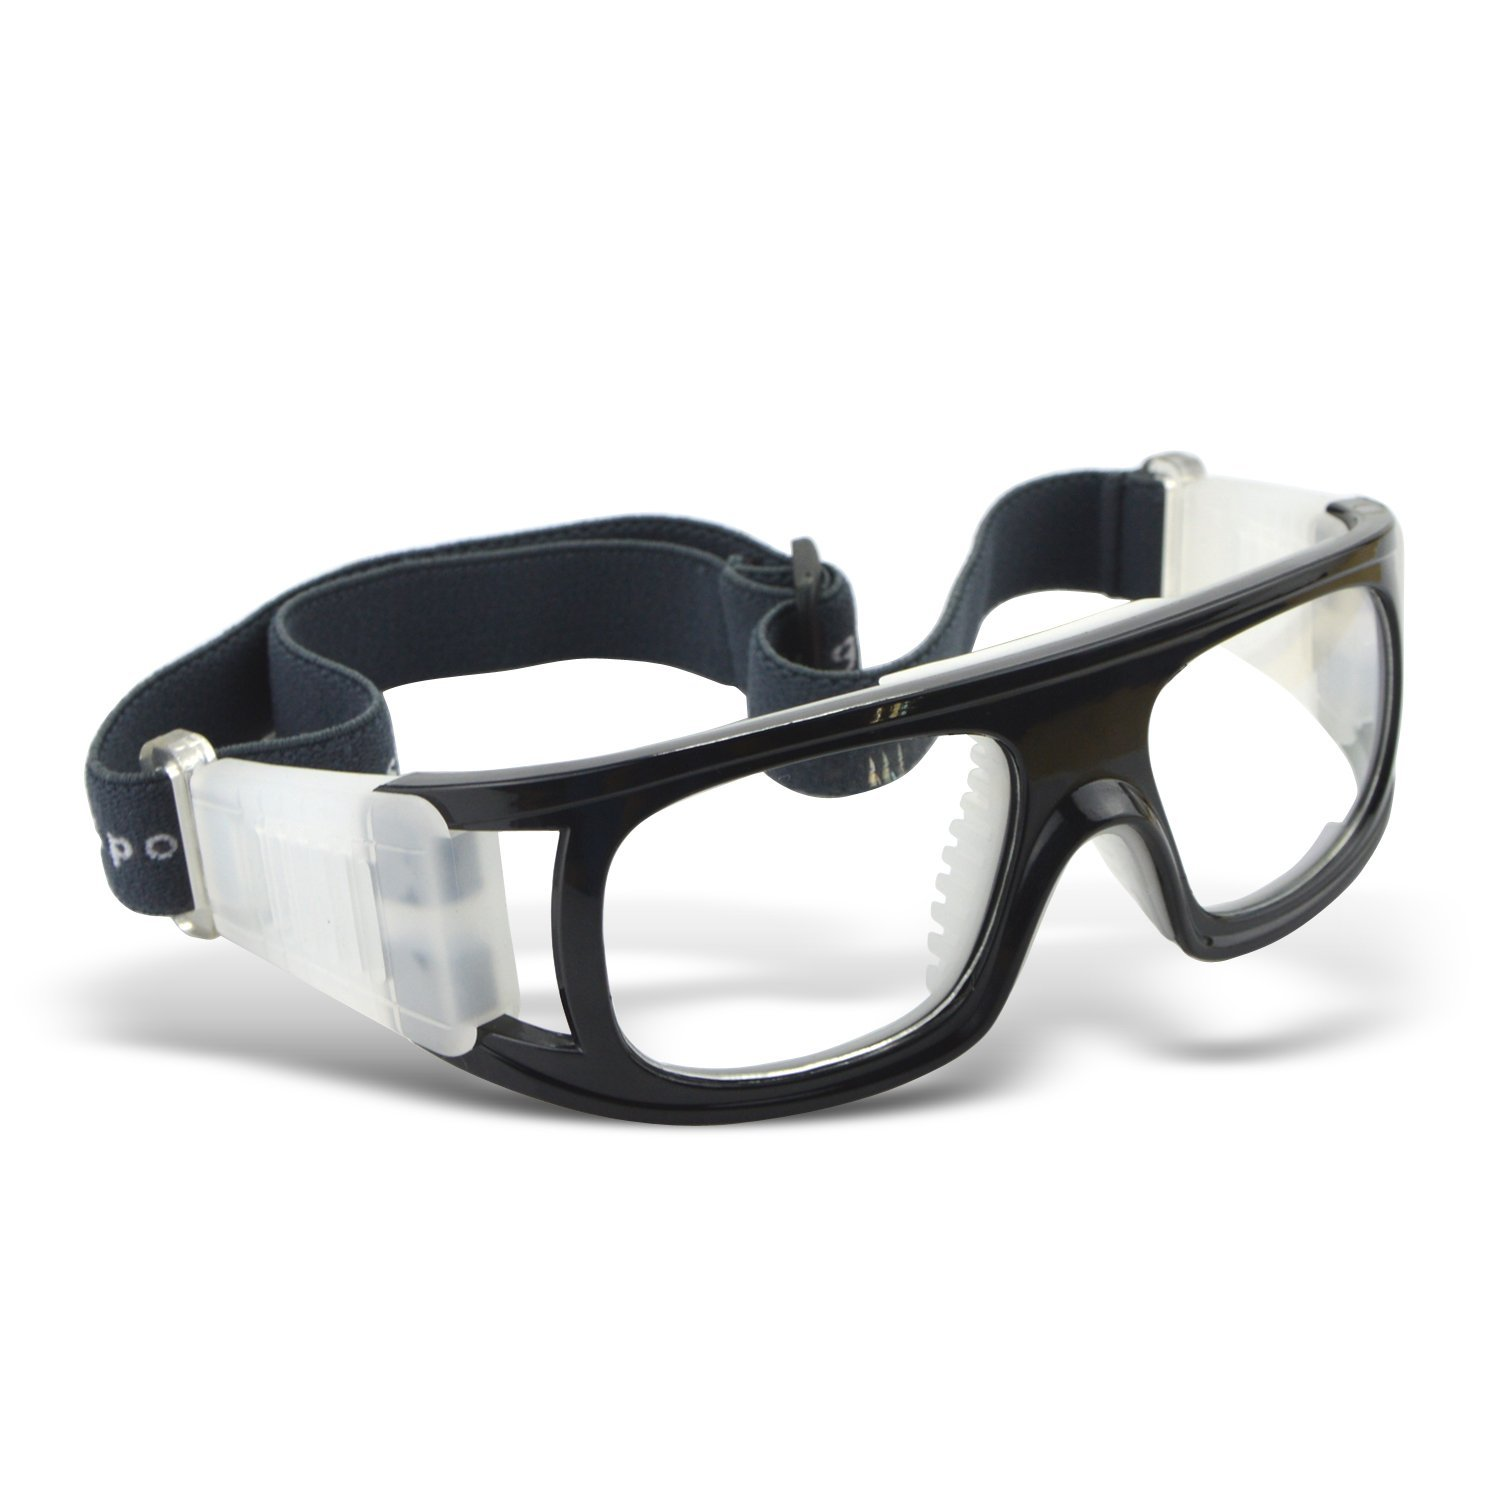 59116658524 Get Quotations · Elemart(TM) Unisex Sport Glasses Anti-fog Protective  Safety Goggles w  Adjustable